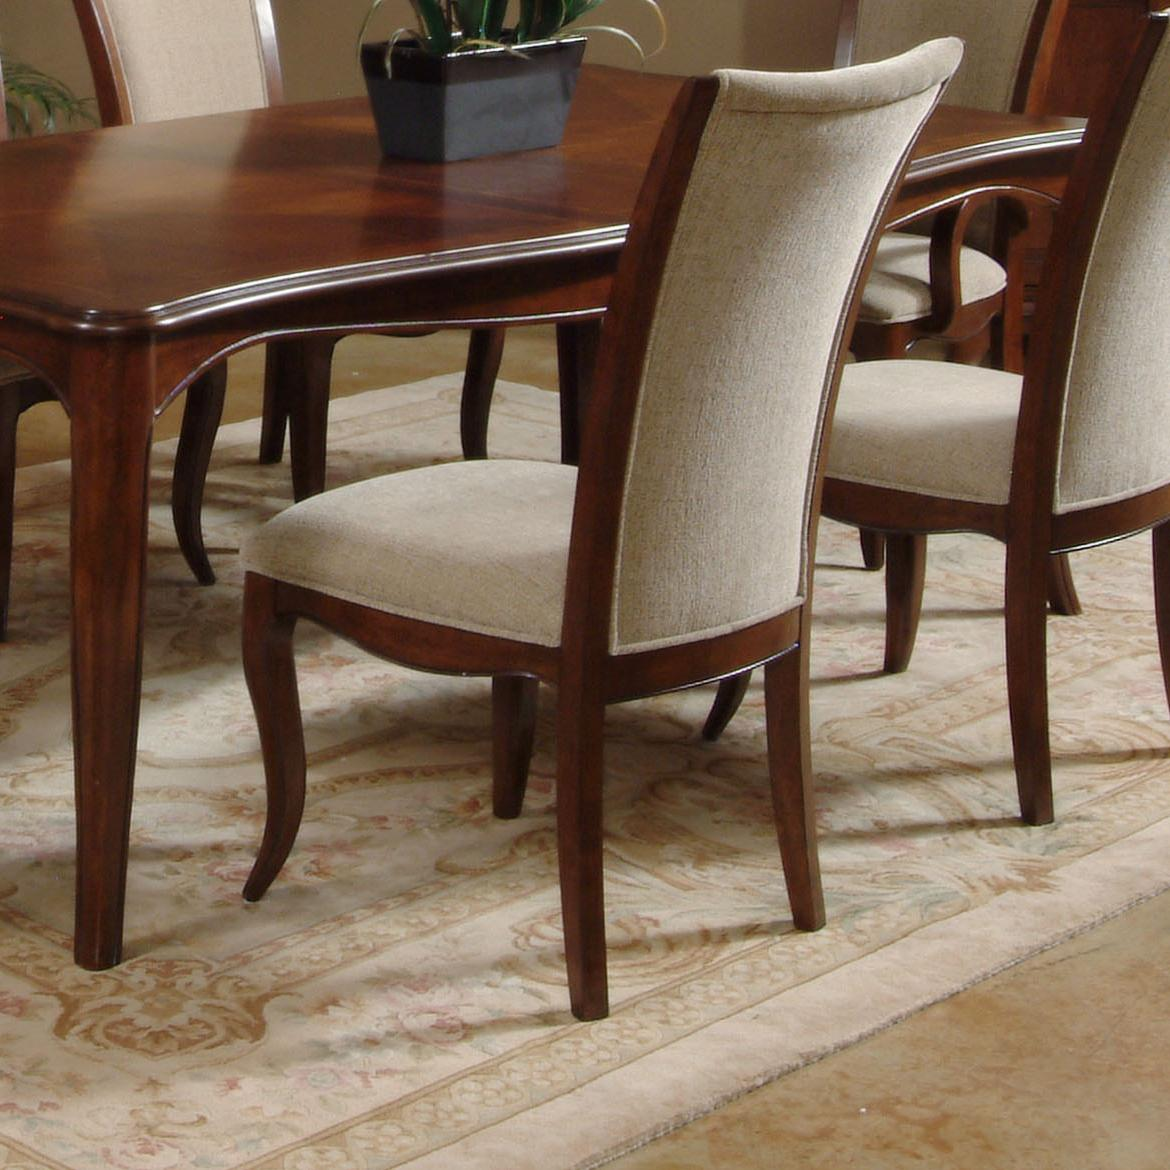 Morris Home Furnishings South Hampton South Hampton Dining Side Chair - Item Number: 837-305